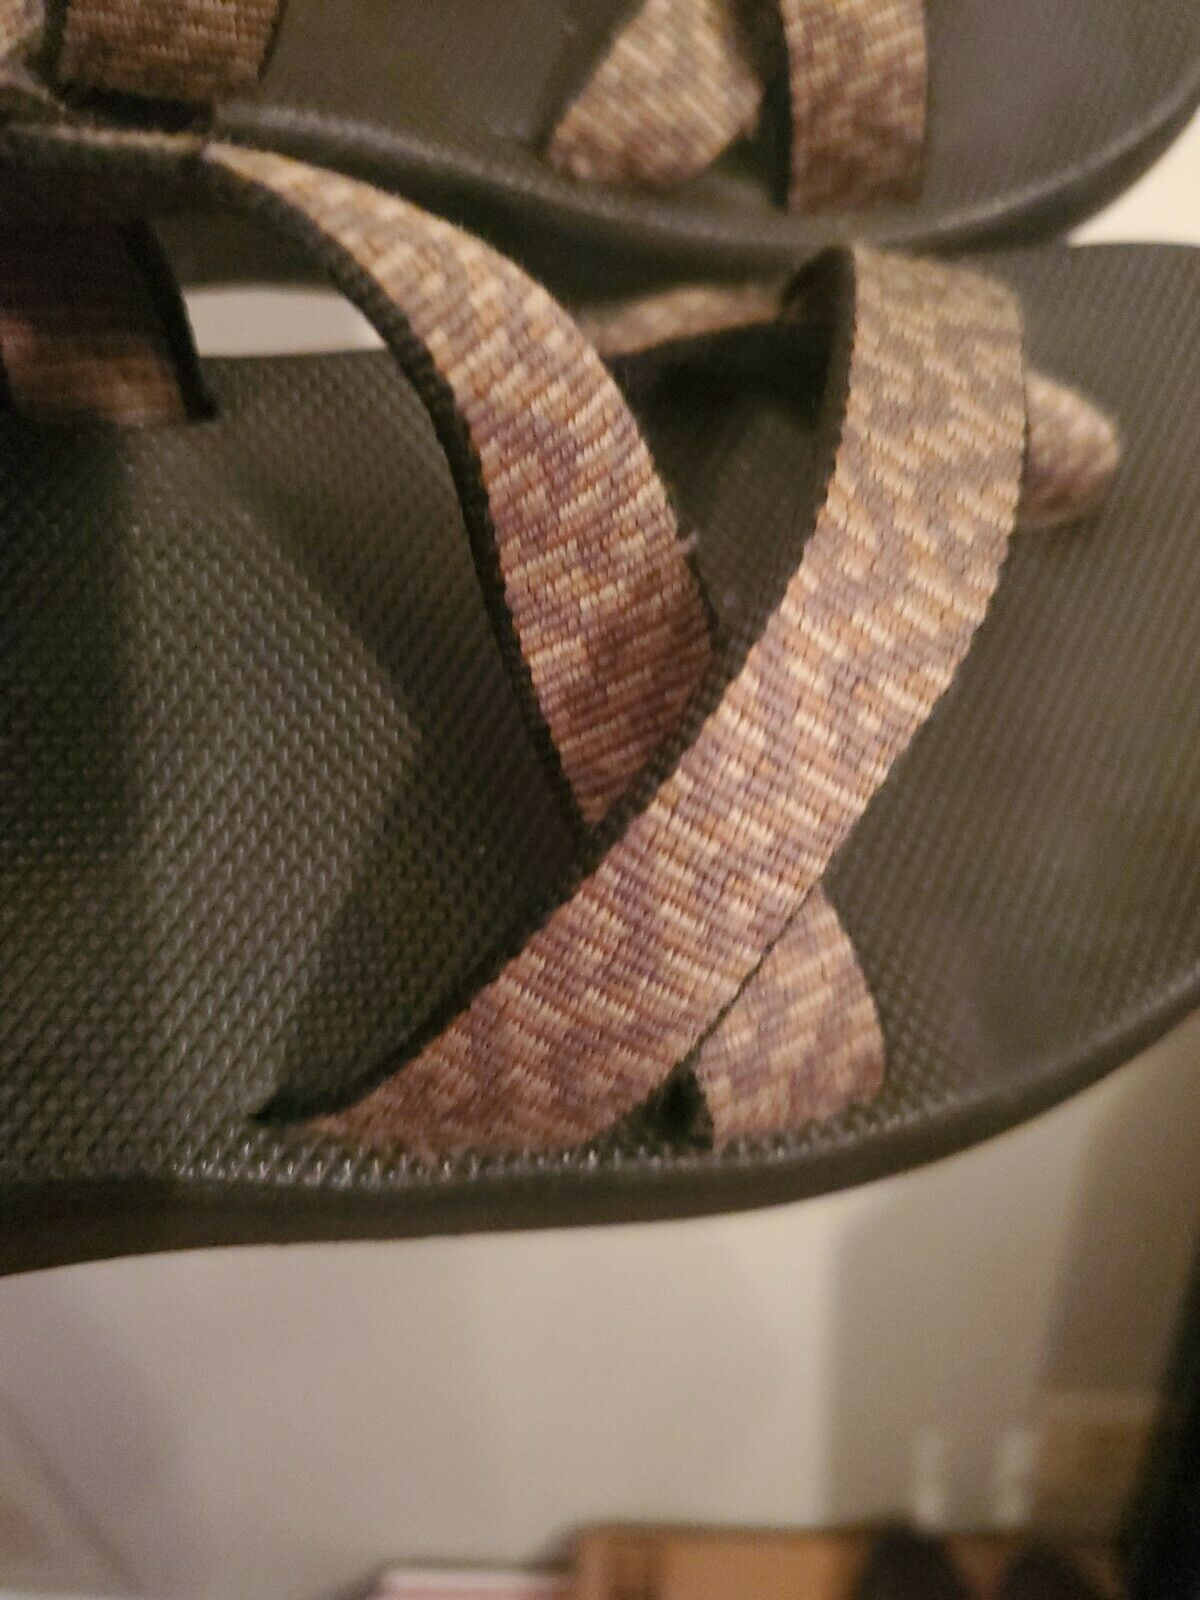 CHACO Women's Size 8 Strappy Sandals - image 9